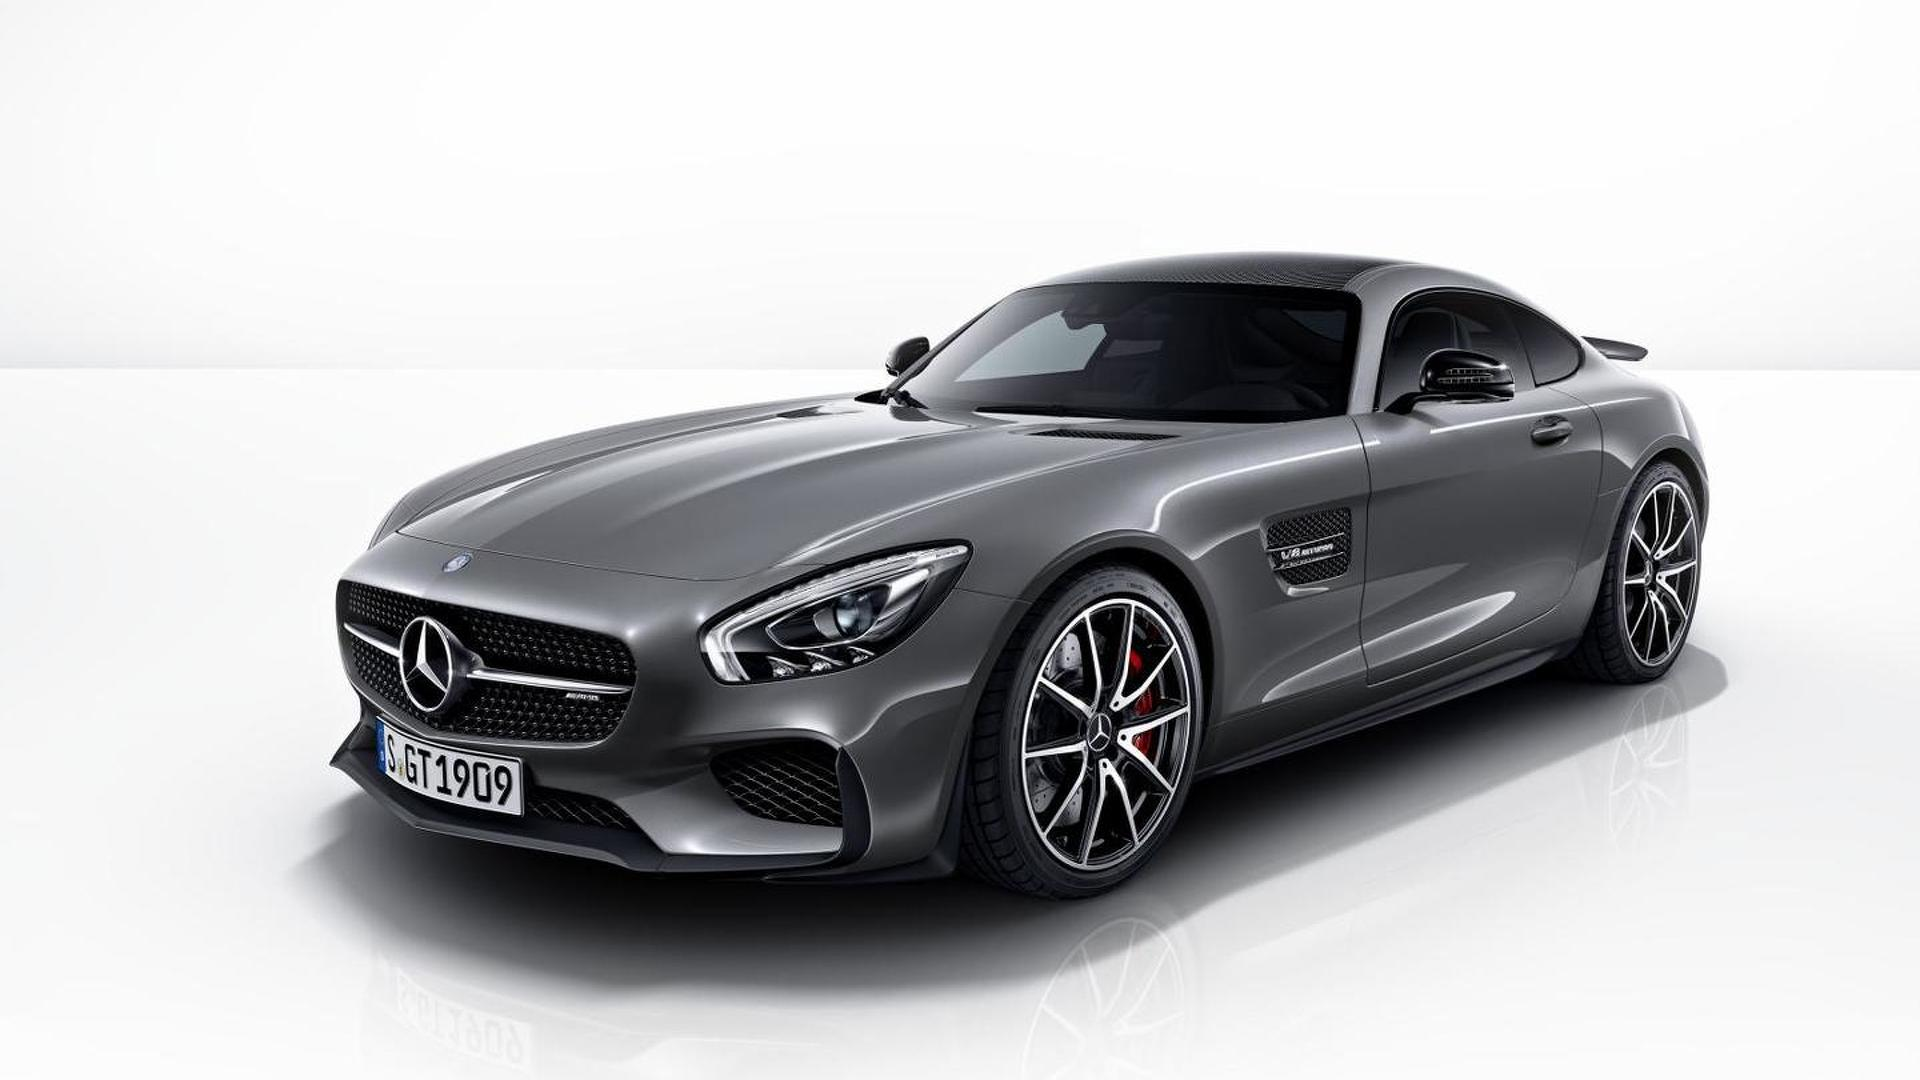 mercedes amg gt starts from 115 430 eur c63 amg priced at 76 100 eur in germany. Black Bedroom Furniture Sets. Home Design Ideas